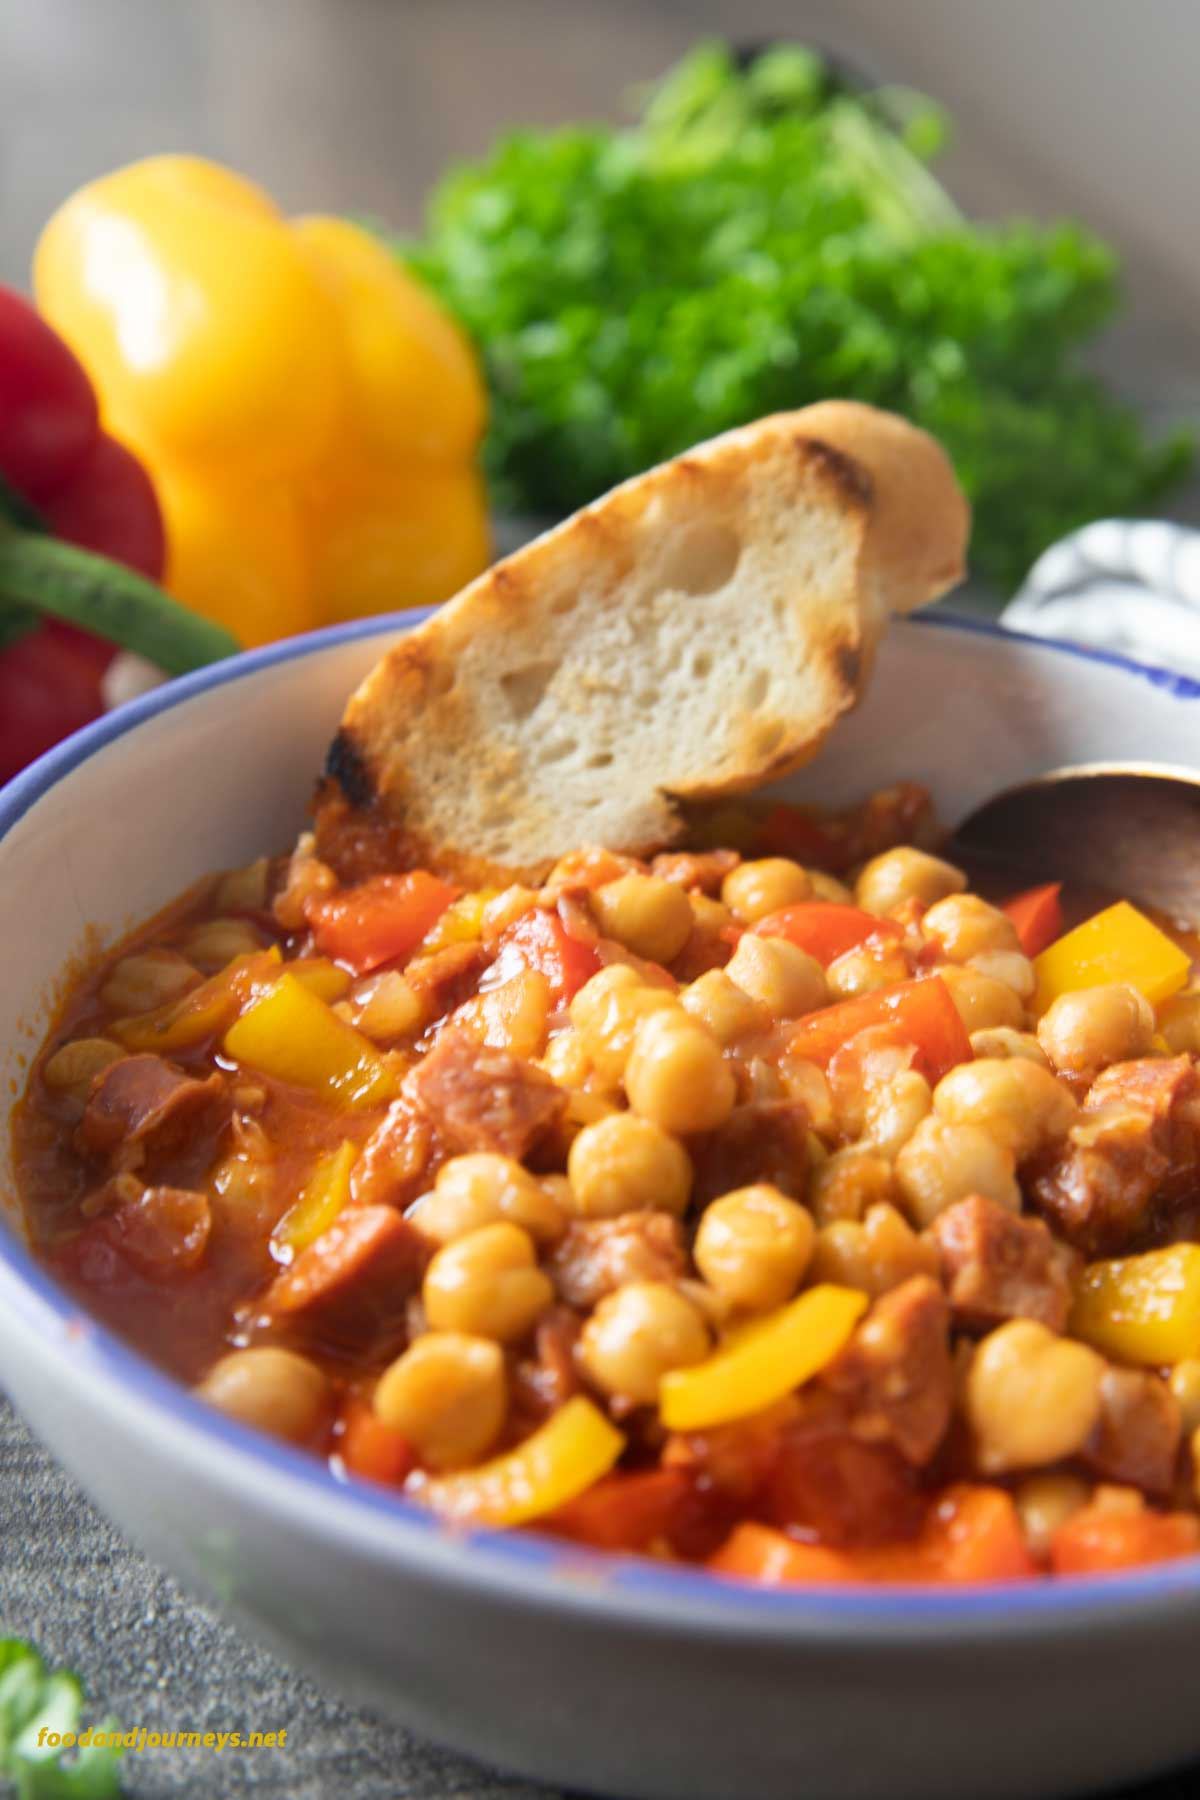 A closer shot of a bowl of Chorizo and Chickpea Stew, with a piece of toasted bread. A bunch of parsley is on the background, an option for serving.